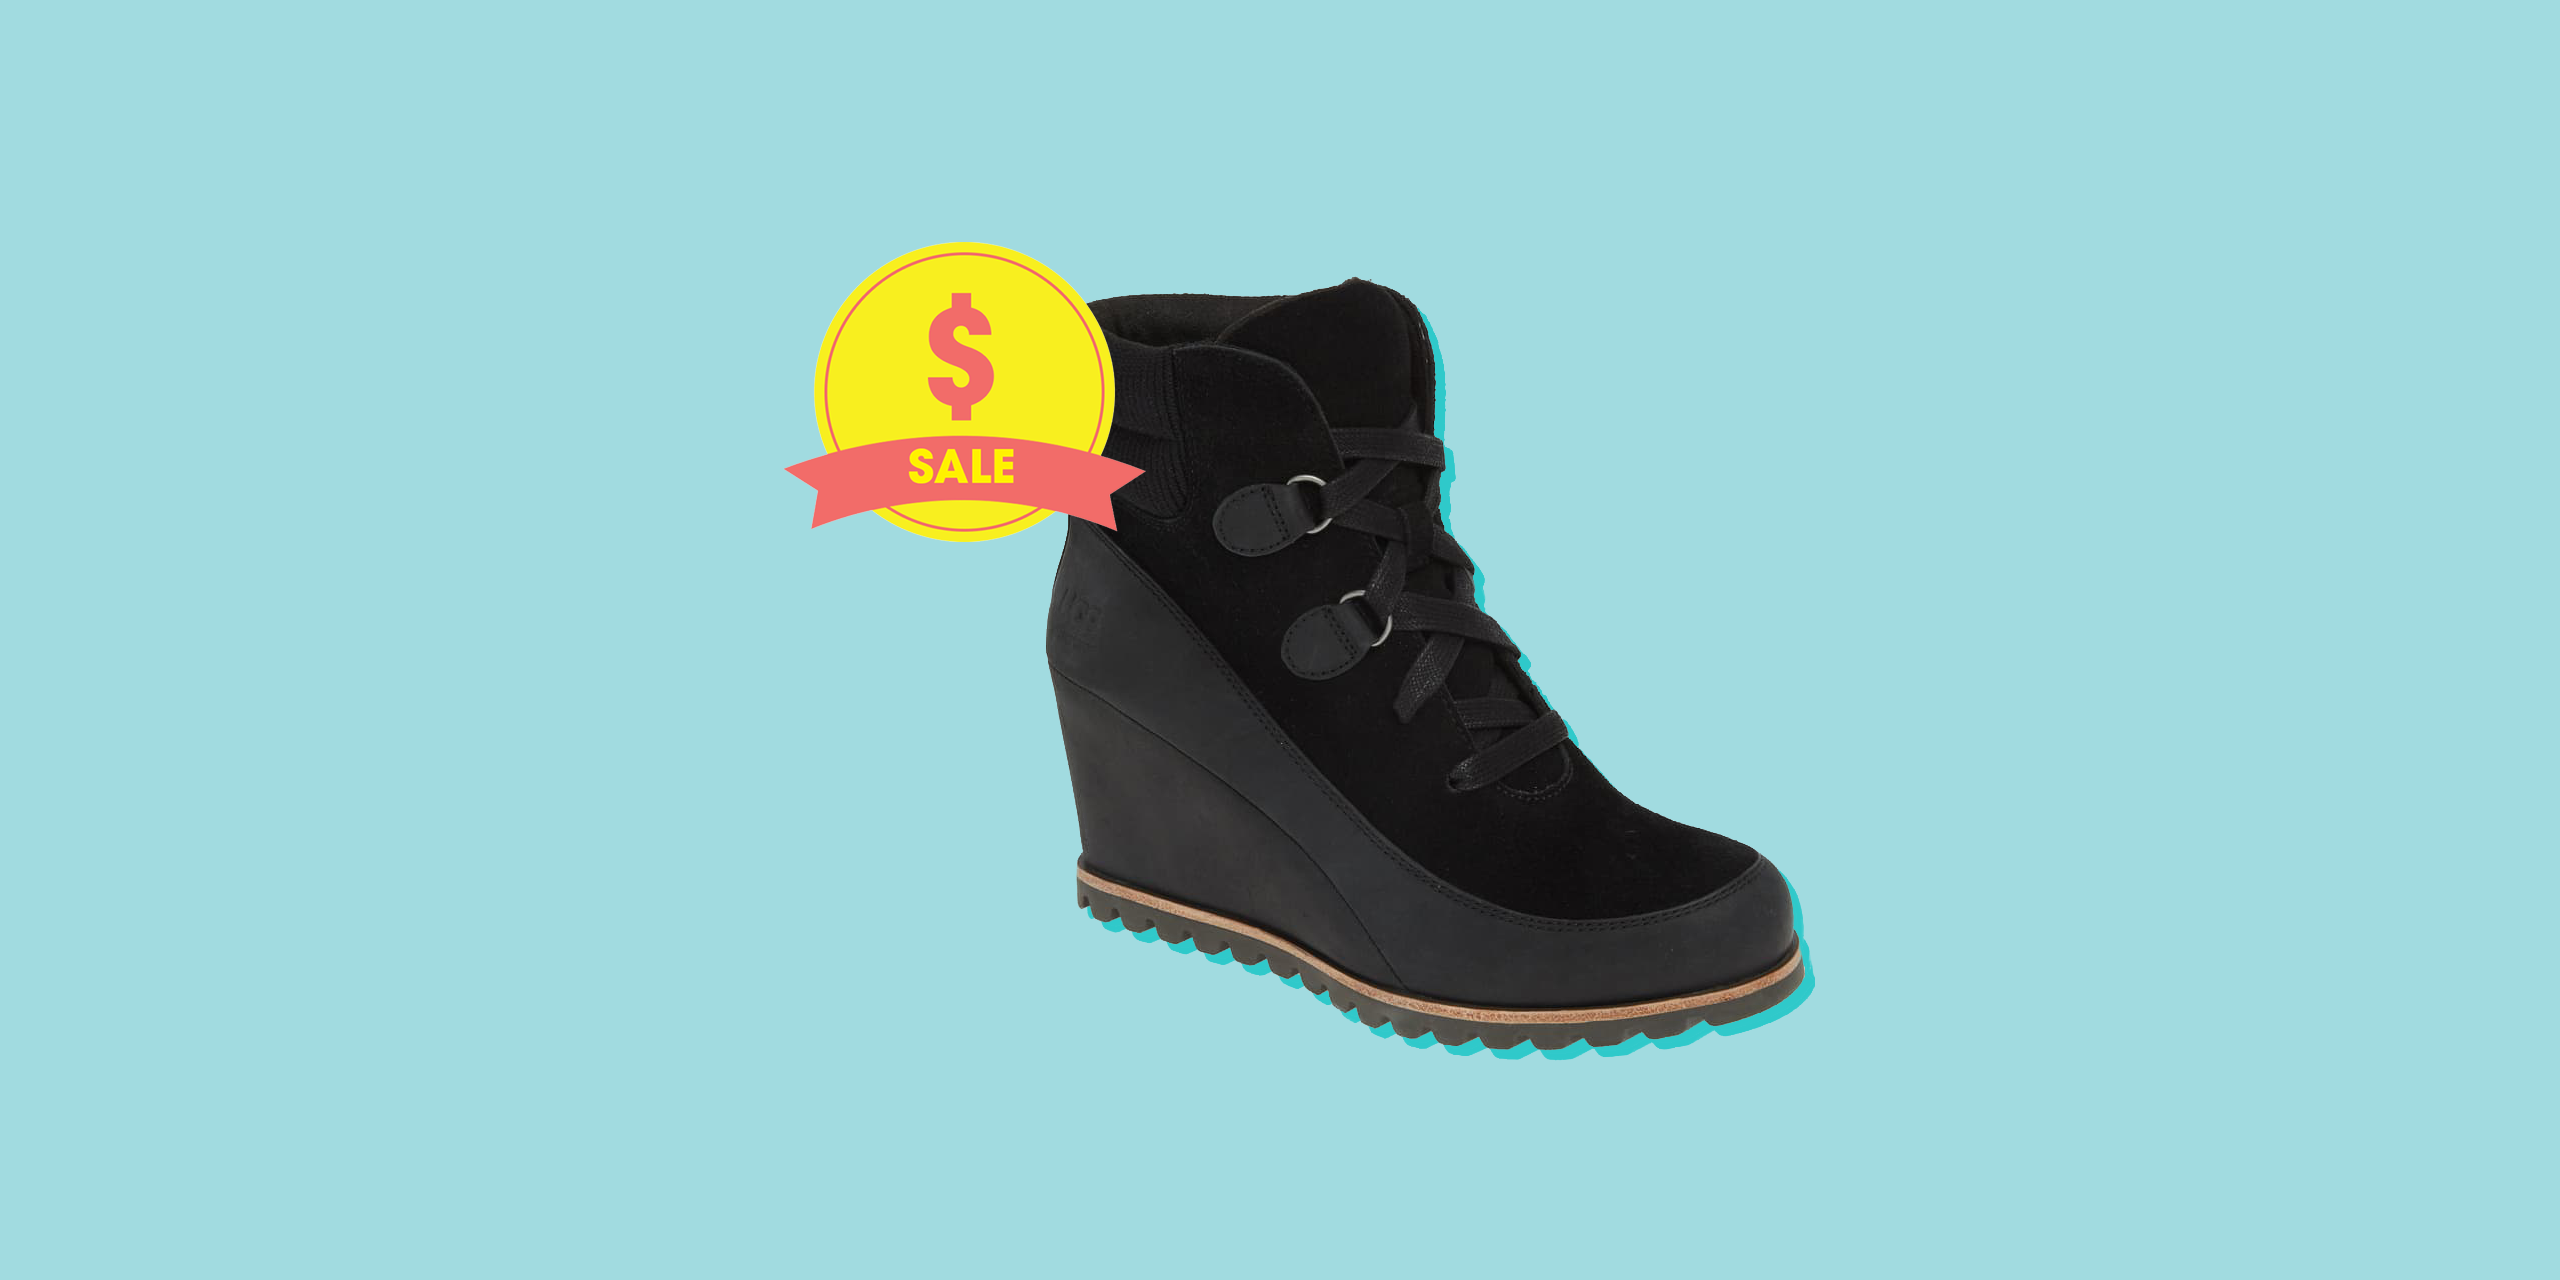 These Waterproof UGGs Are 35% Off, Which Translates to Super Sale